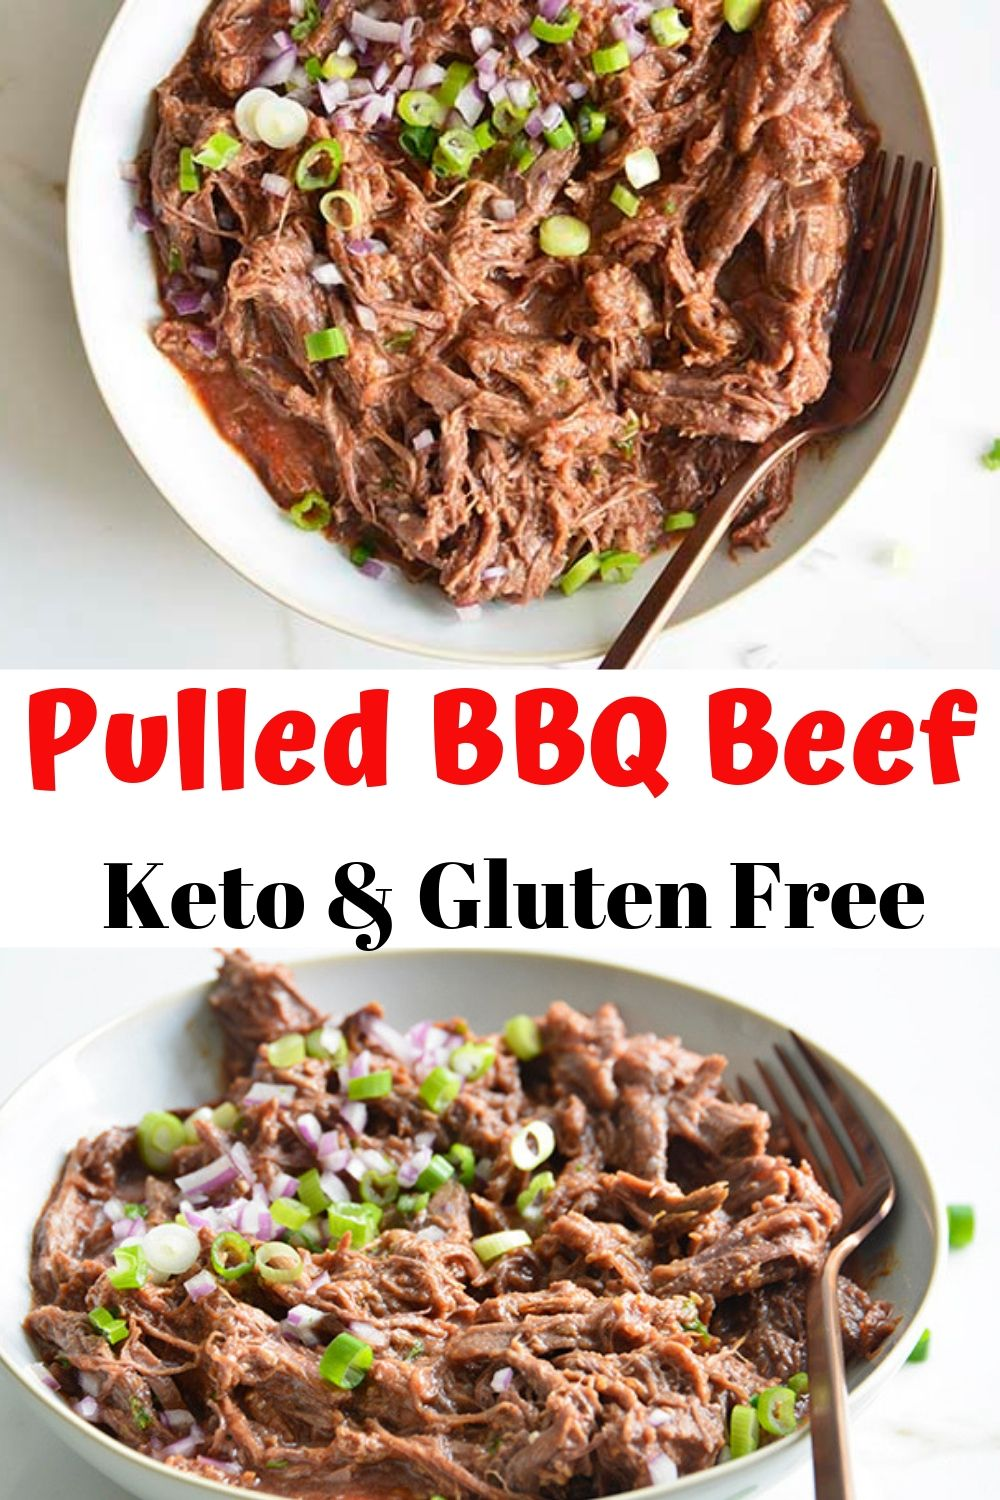 Pulled BBQ Beef is an easy recipe that the entire family will love! Make a large batch in the crockpot or Instant Pot for barbecues and potlucks! The secret ingredient to this shredded BBQ beef is our amazing homemade sugar free BBQ sauce!